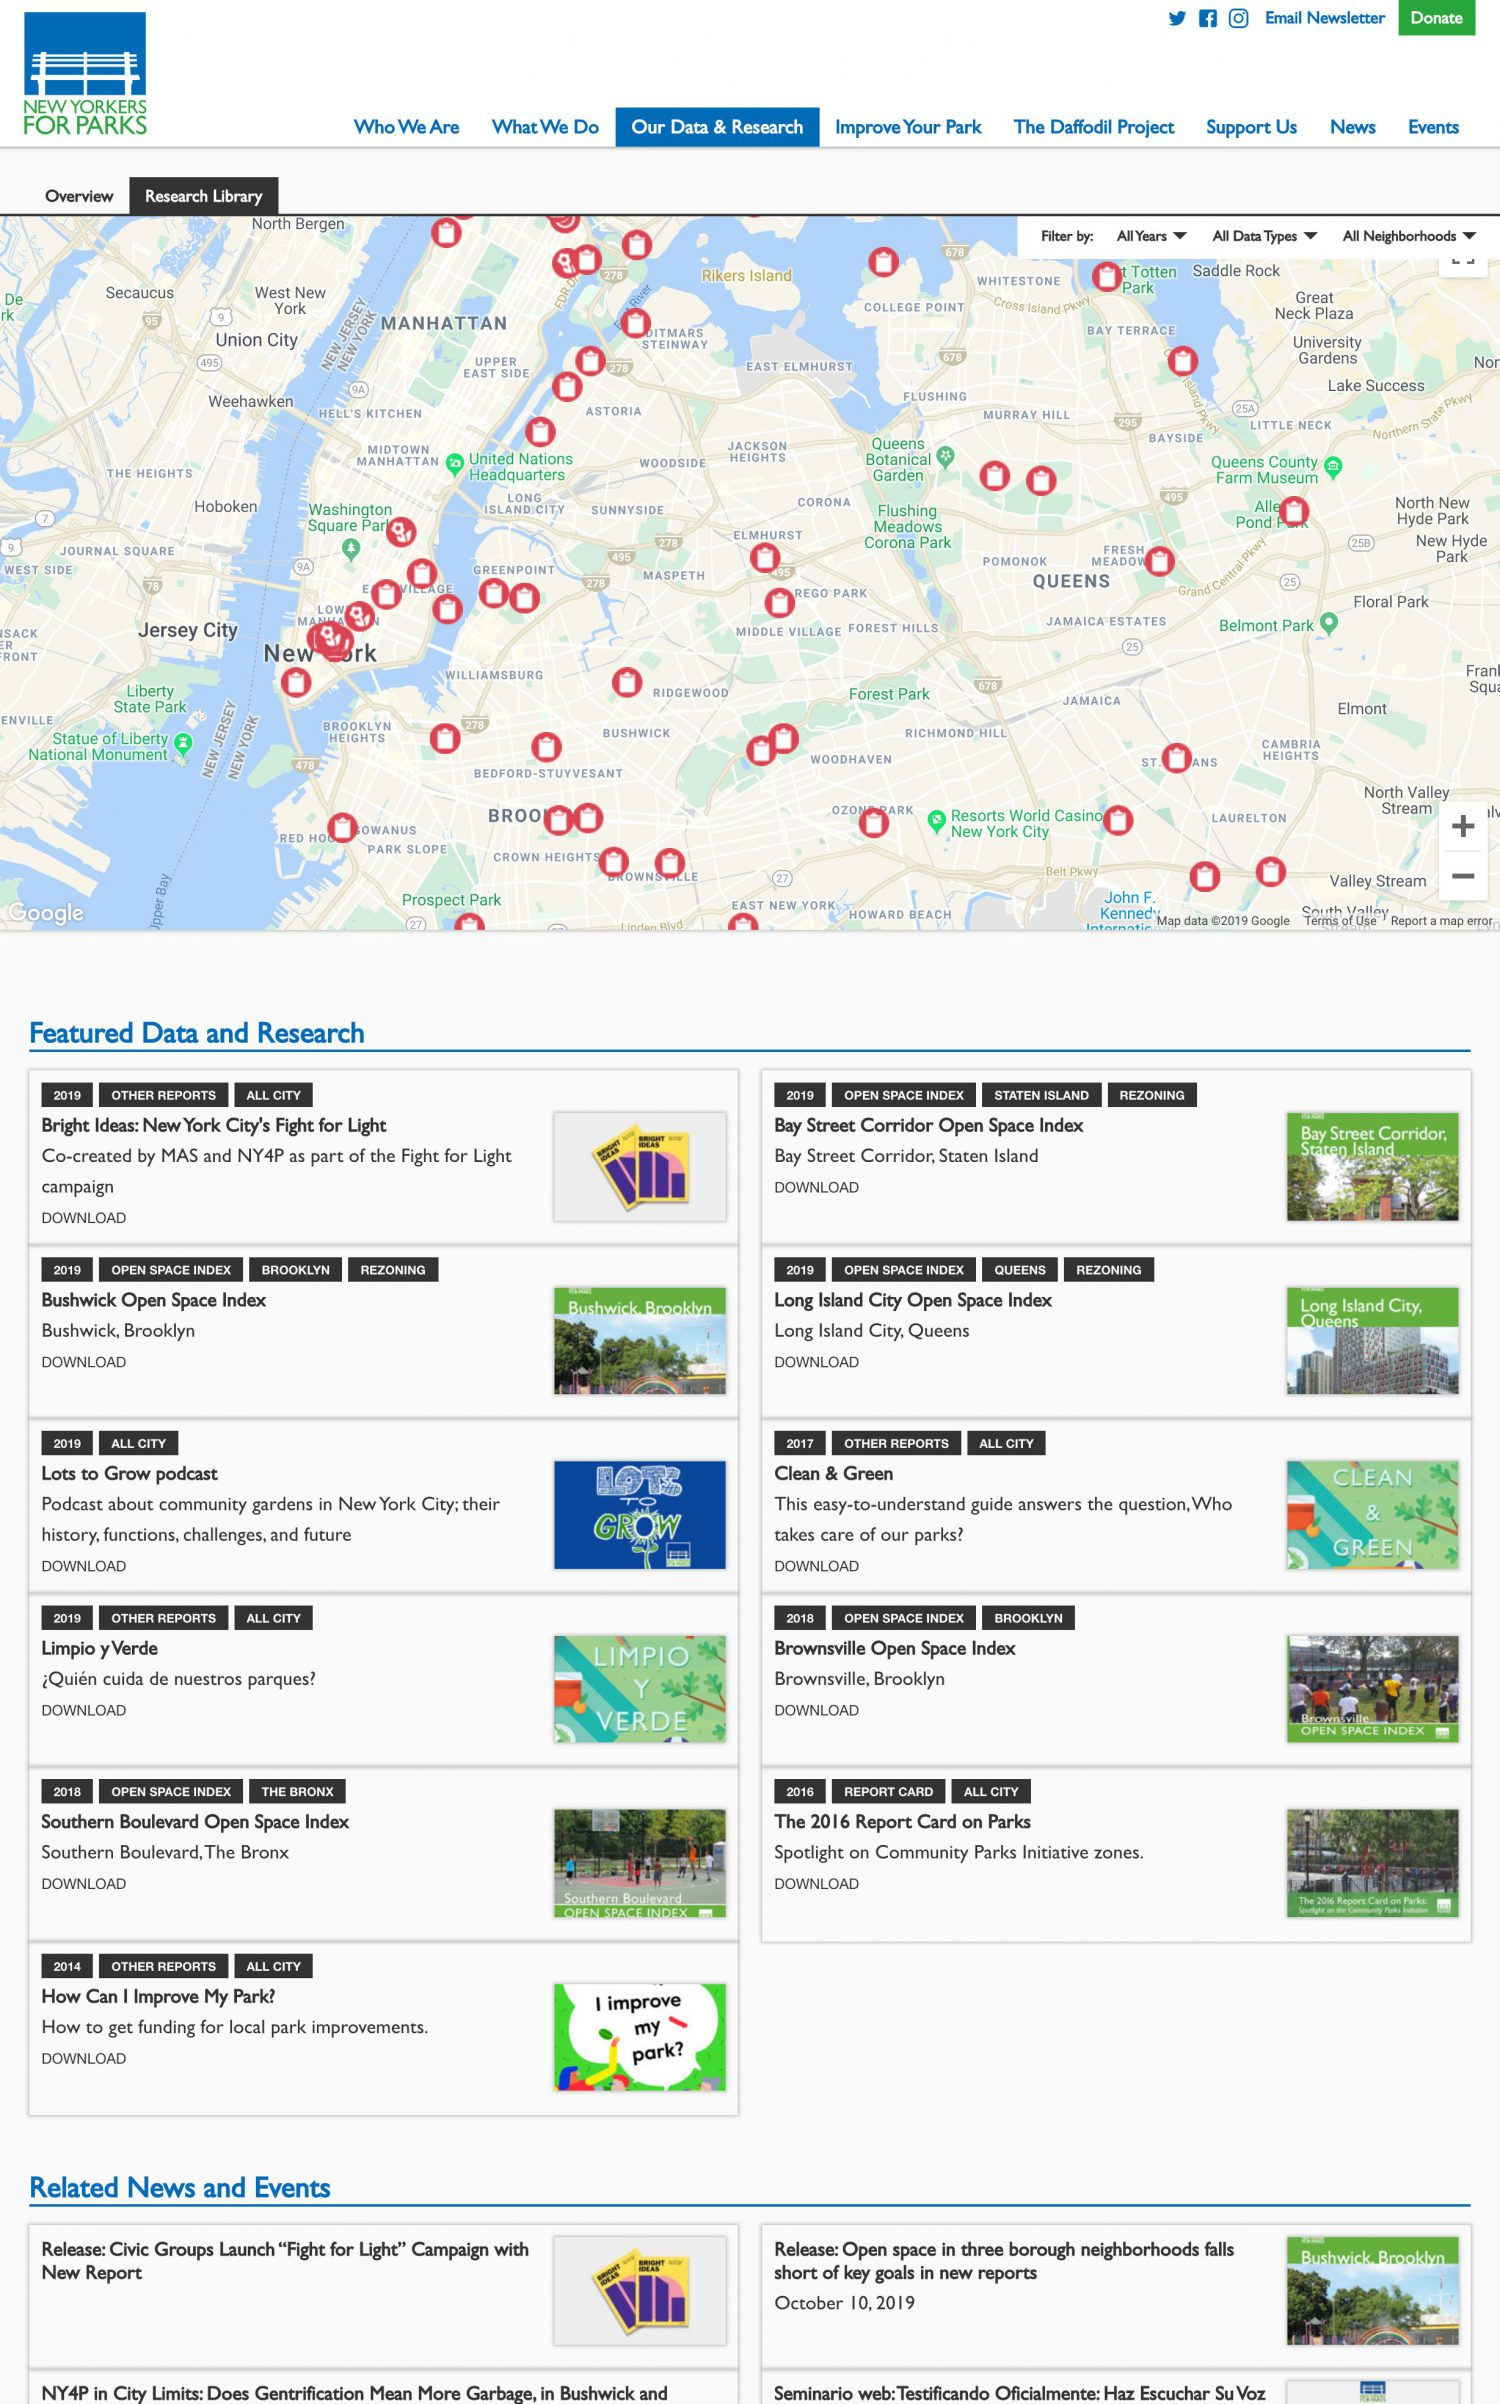 Screenshot of the New Yorkers for Parks website's Data and Research Library page